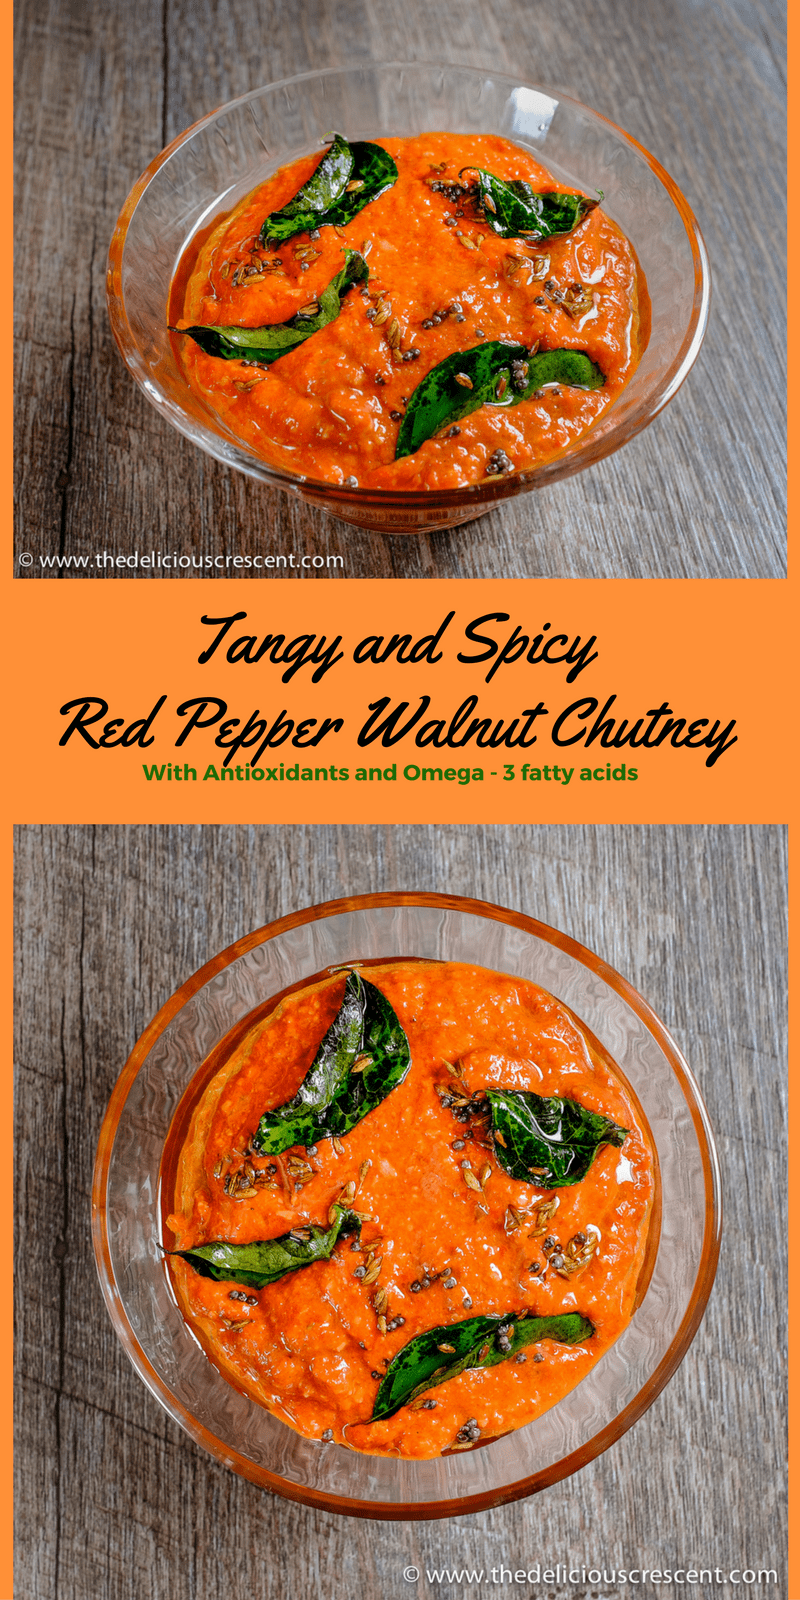 Delicious smoky red pepper chutney with walnuts, packed with antioxidants, omega-3 fats and phytochemicals. The sweet smoky roasted red bell peppers, tart lemon juice, earthy creaminess of walnuts and aromatic spices come together to give you this delectable chutney.